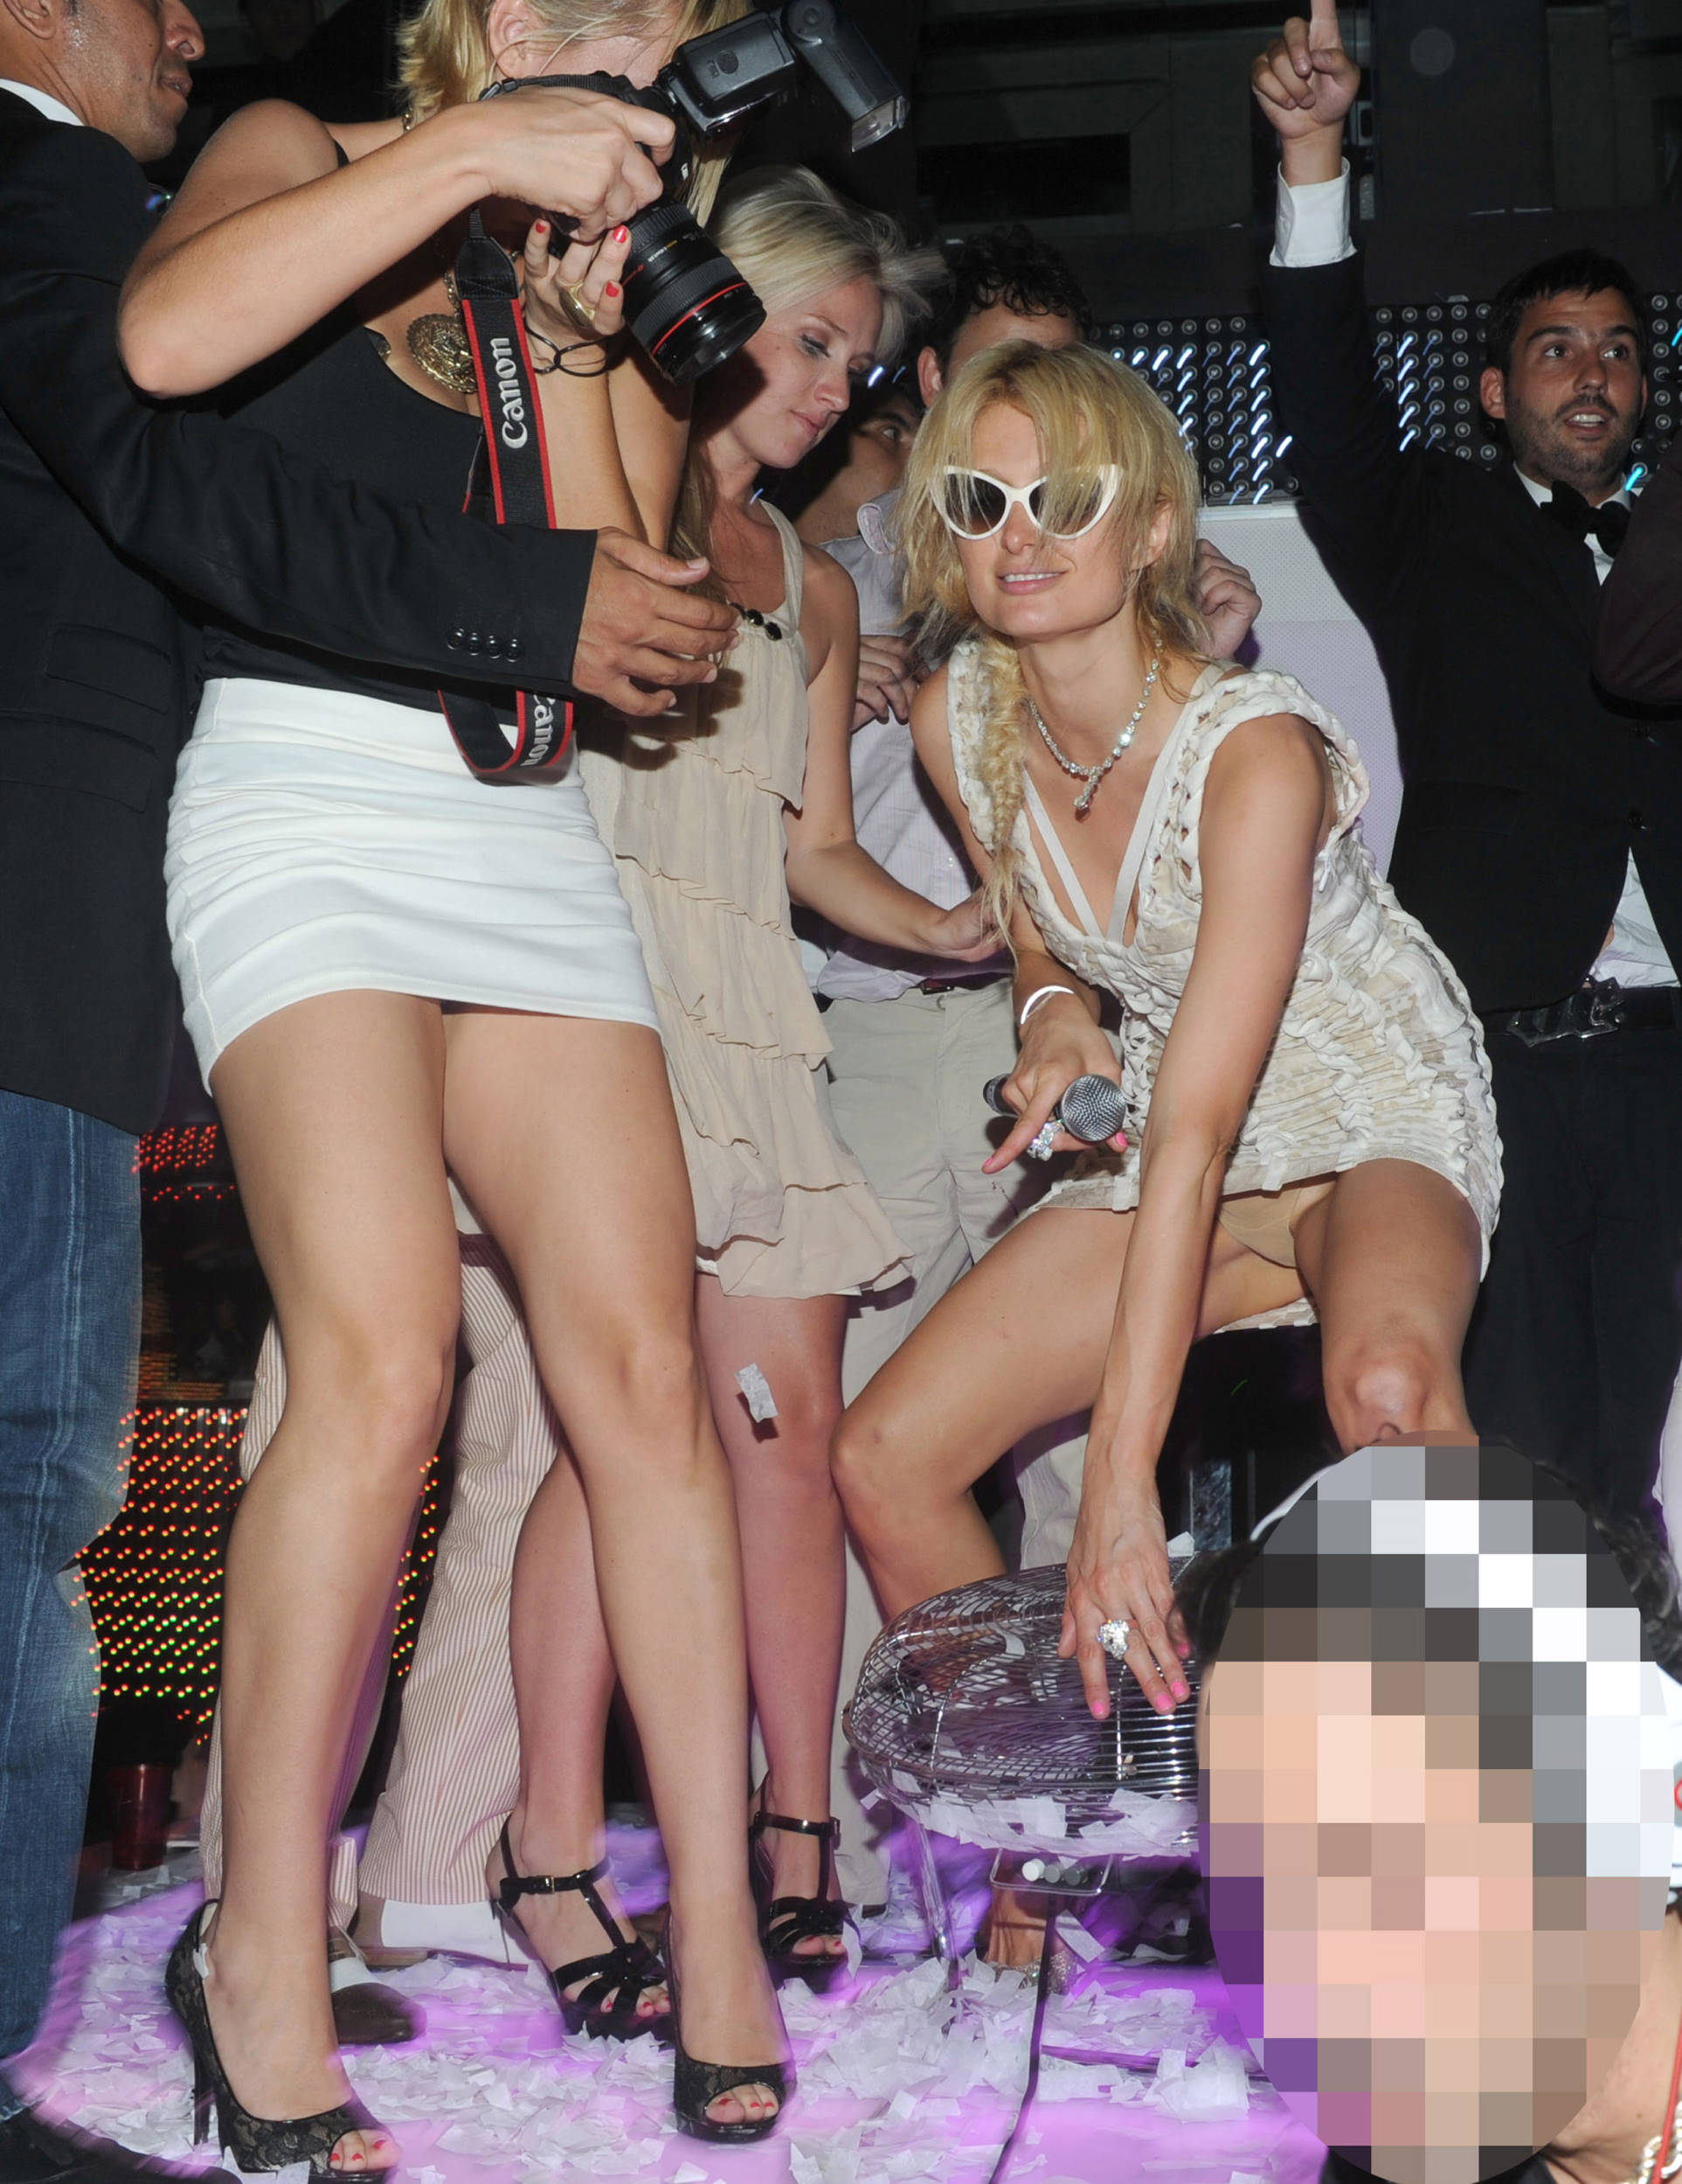 paris-hilton-nude-and-upskirt